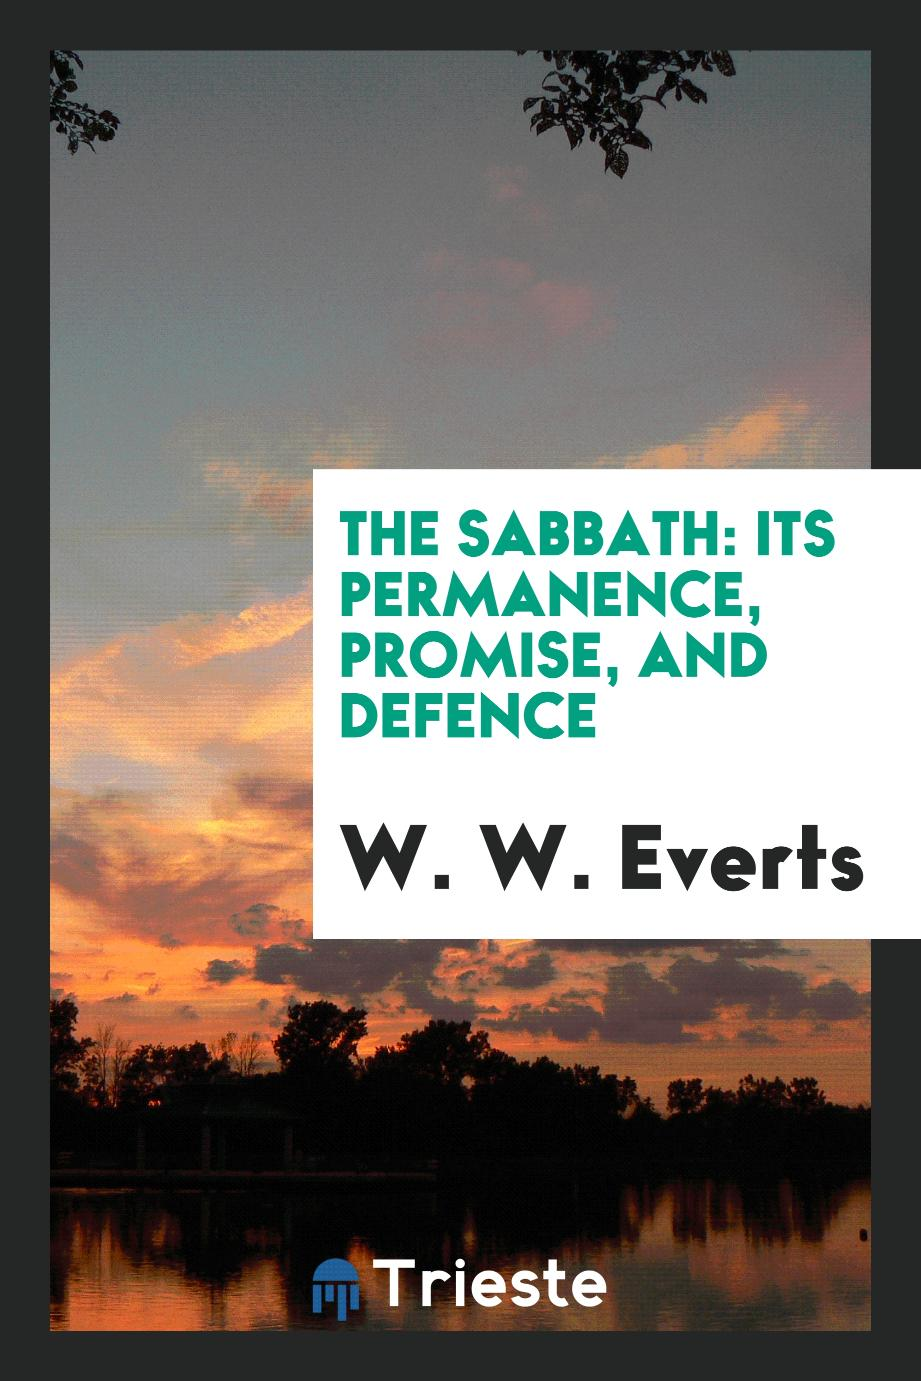 The Sabbath: its permanence, promise, and defence